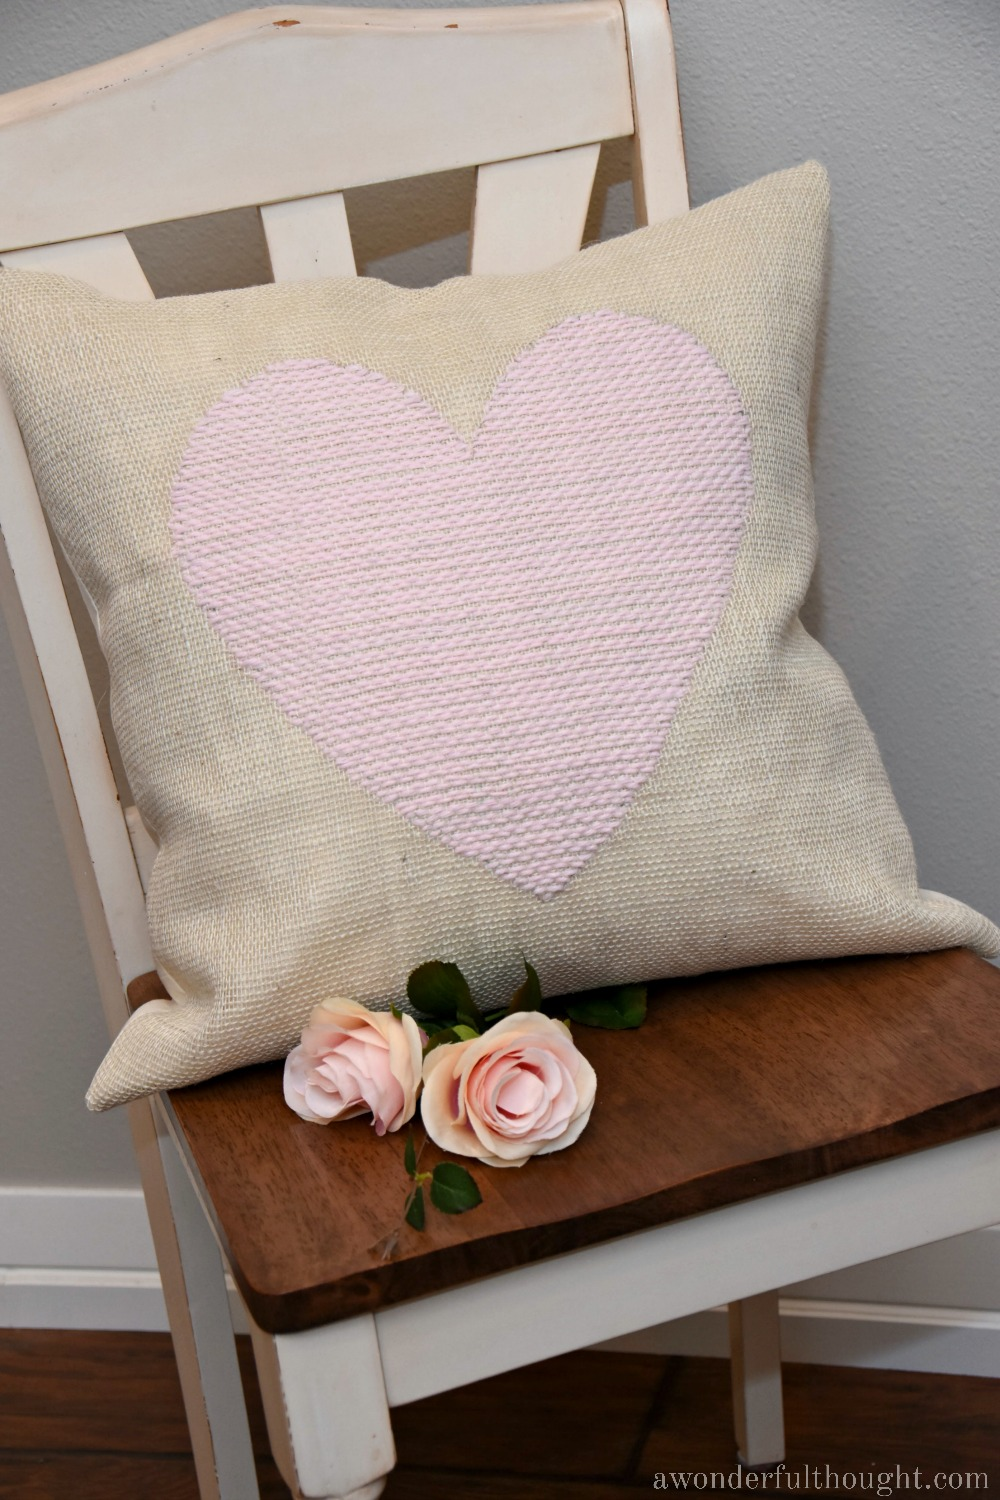 up dated co bridgehead pillow maker pillows house burlap products at by